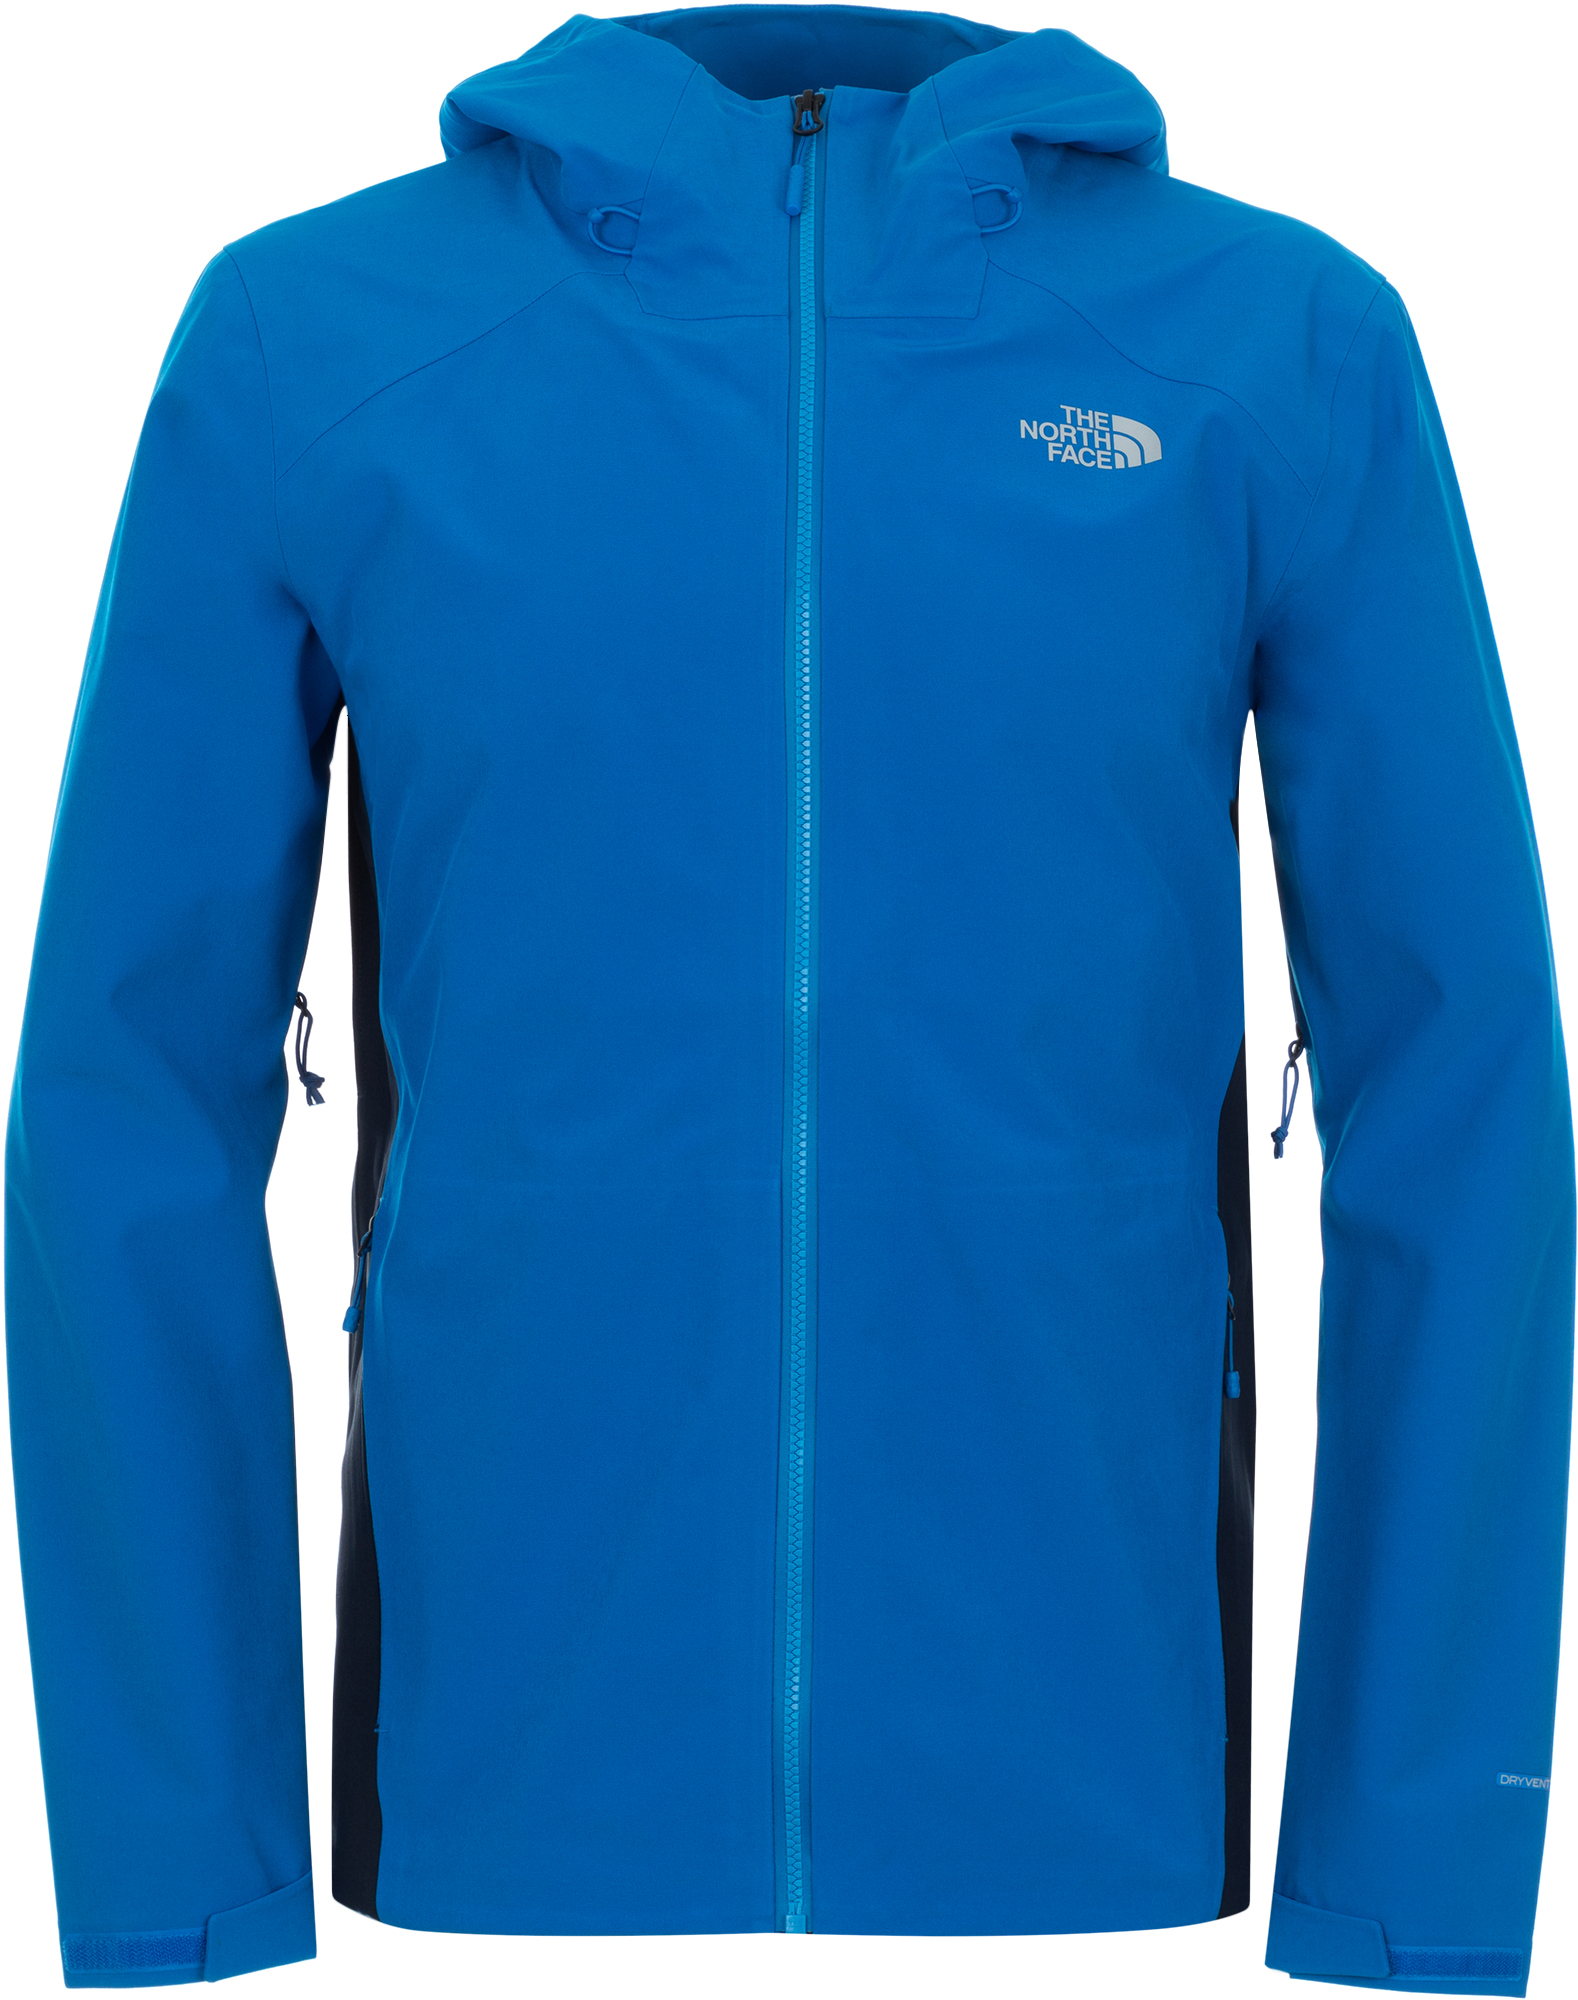 The North Face Ветровка мужская The North Face Apex Flex DryVent, размер 52 цена